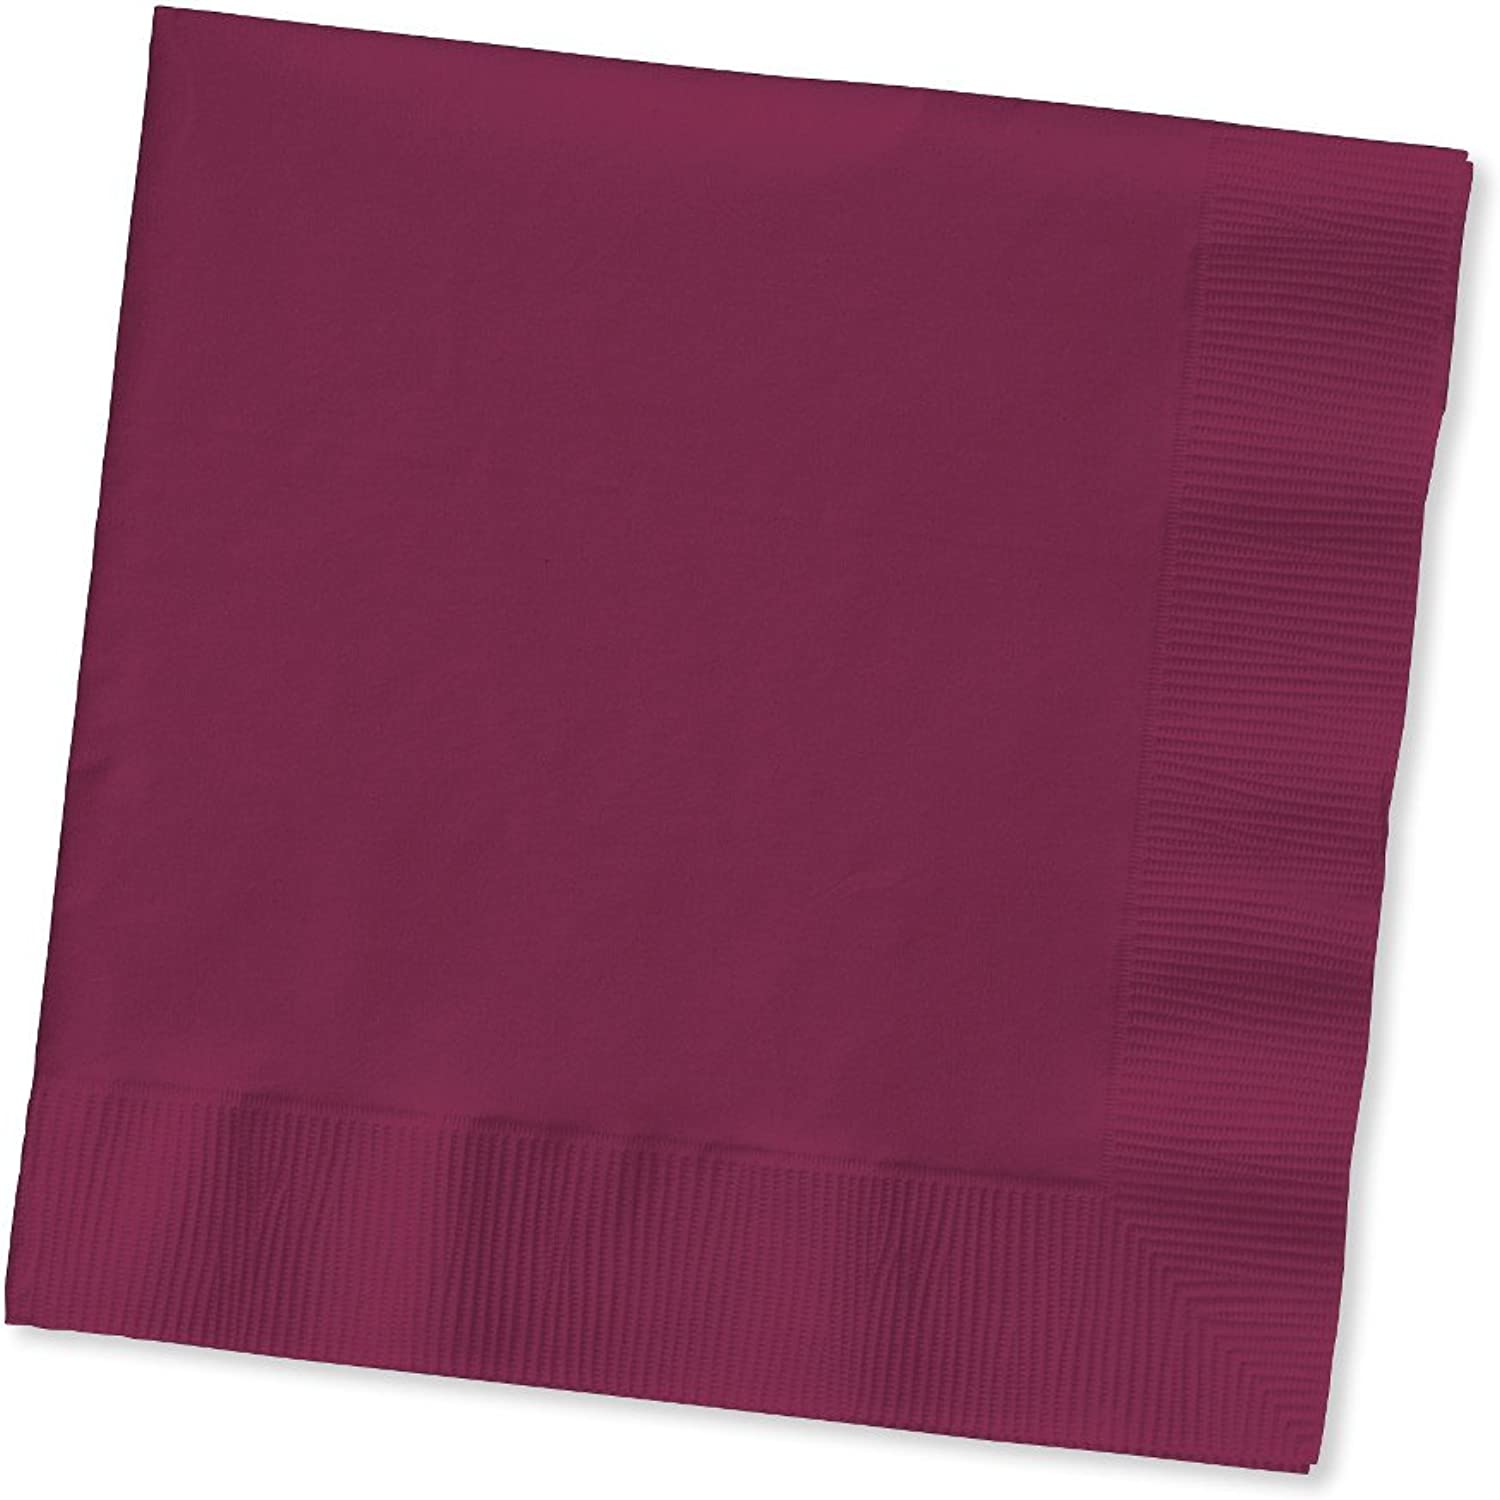 Creative Congreening 663122B Touch of color 2Ply Paper Lunch Napkins, Burgundy , 6.5  x 6.5 , 50ct